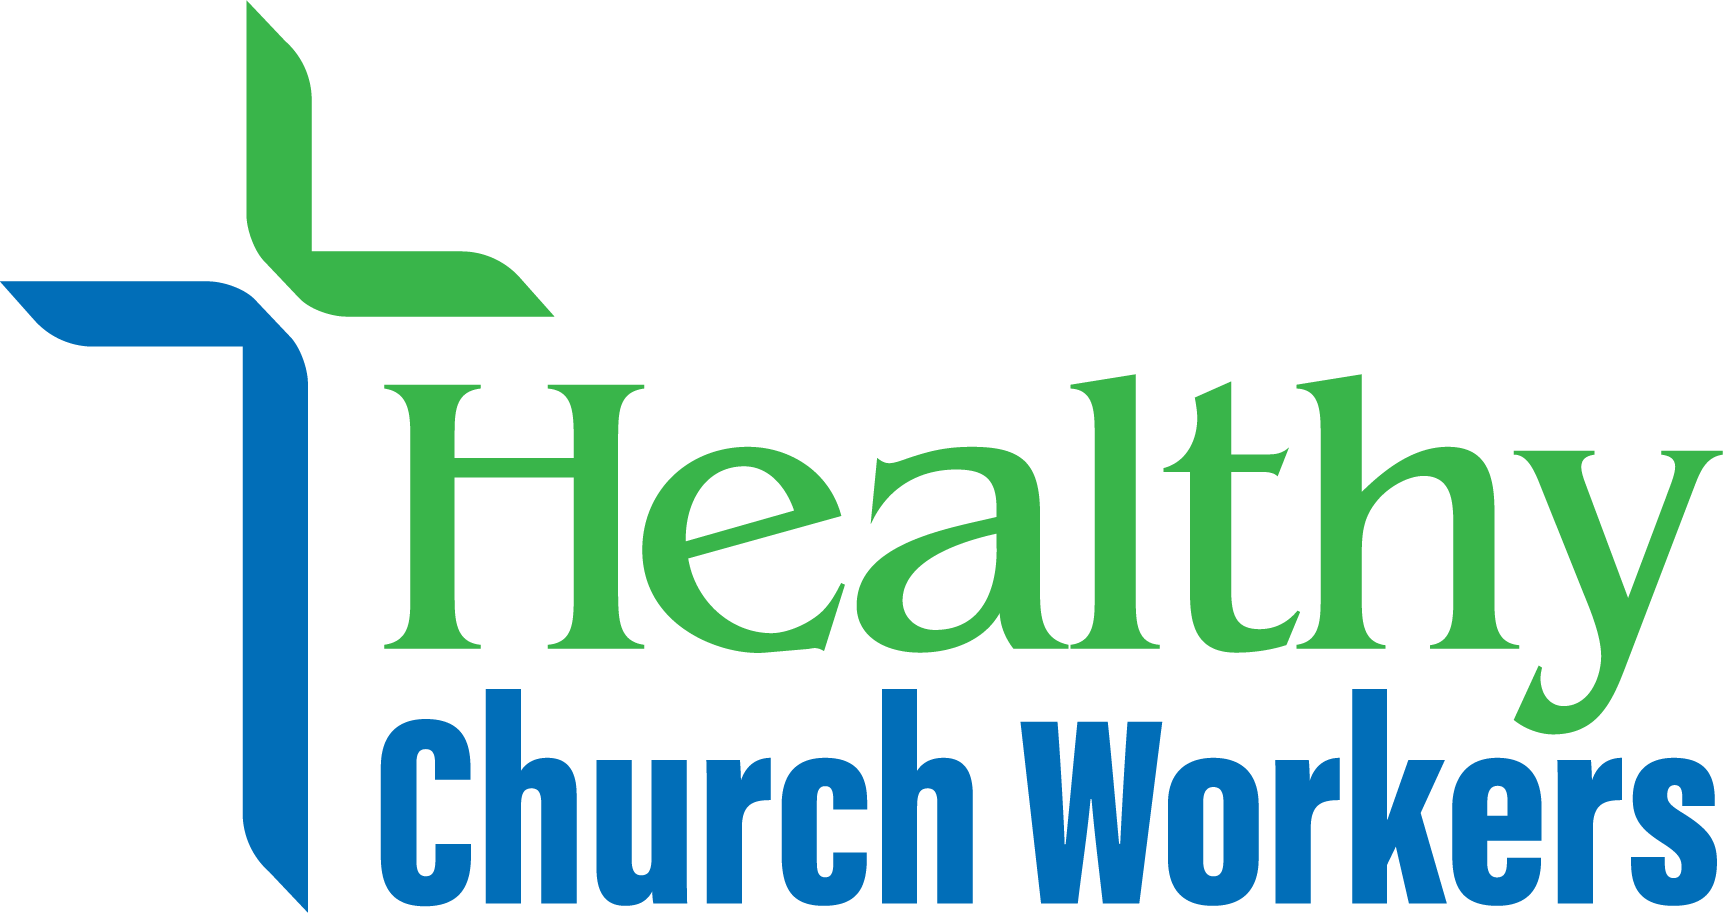 Healthy Church Workers